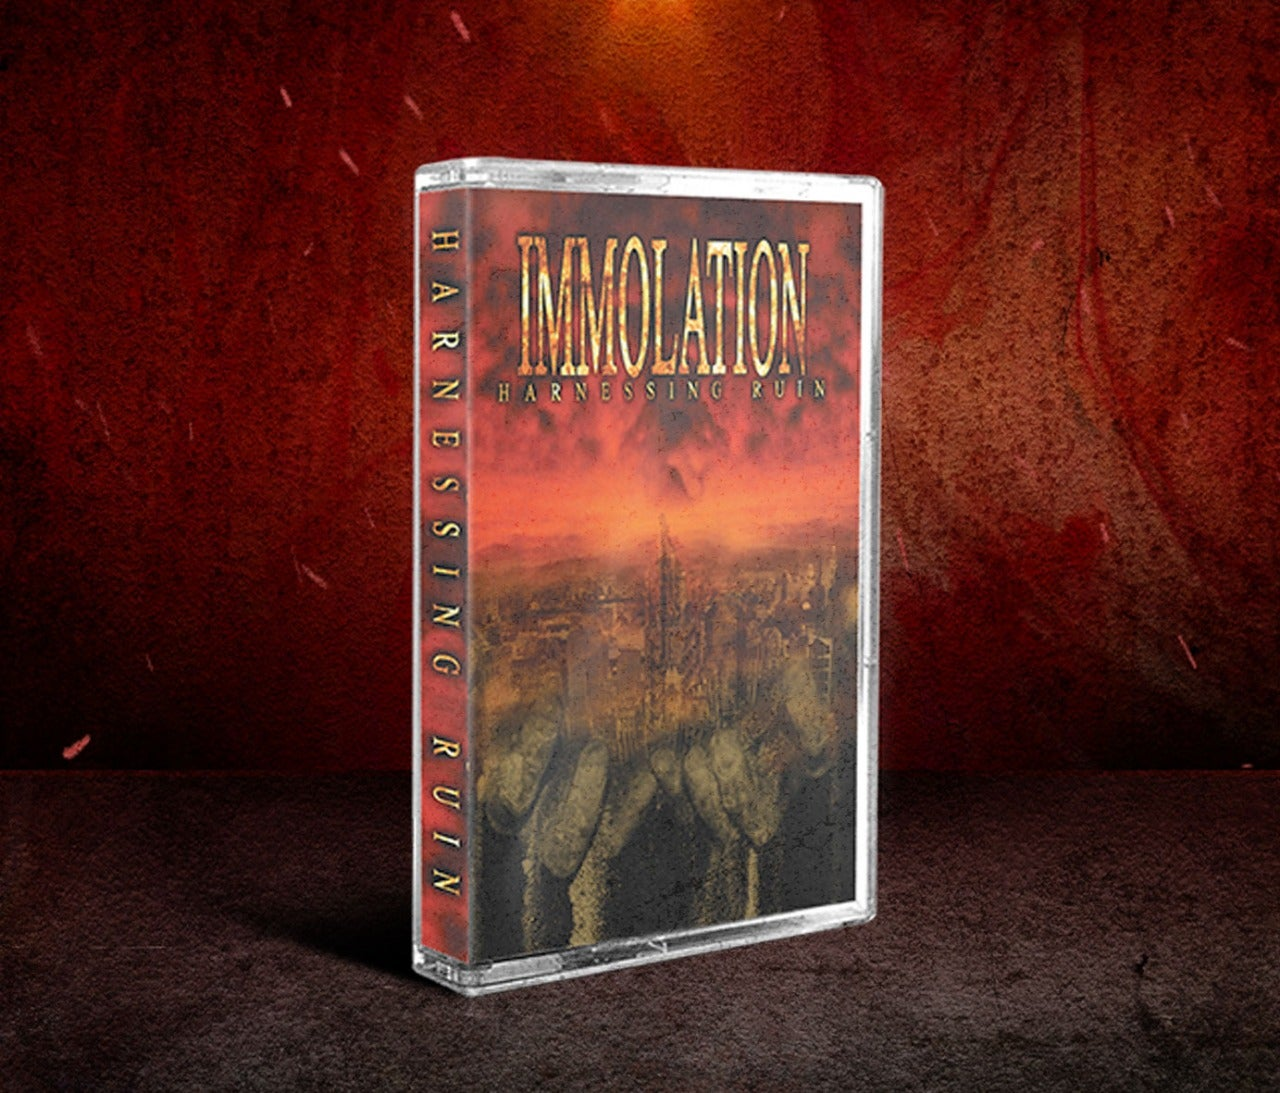 Image of IMMOLATION - Unholy Cult - Harnessing Ruin - Shadows In The Light Tapes